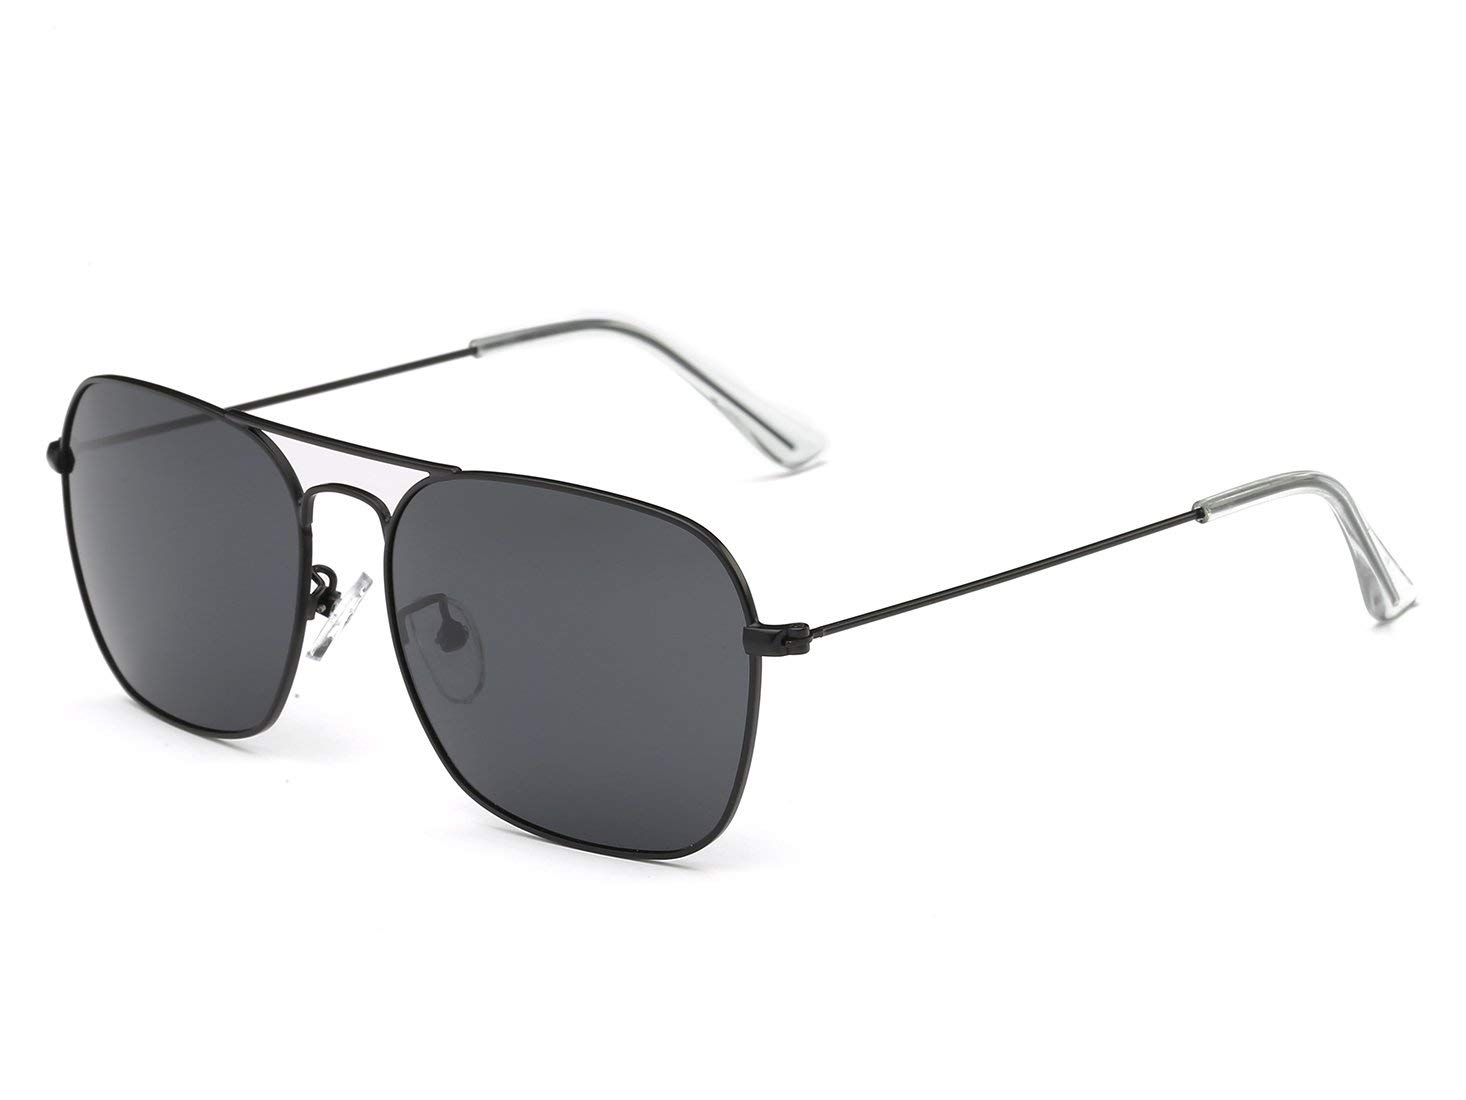 3baf226d7974d Get Quotations · FSK Polarized Square Aviator Sunglasses for Men 56mm  (black